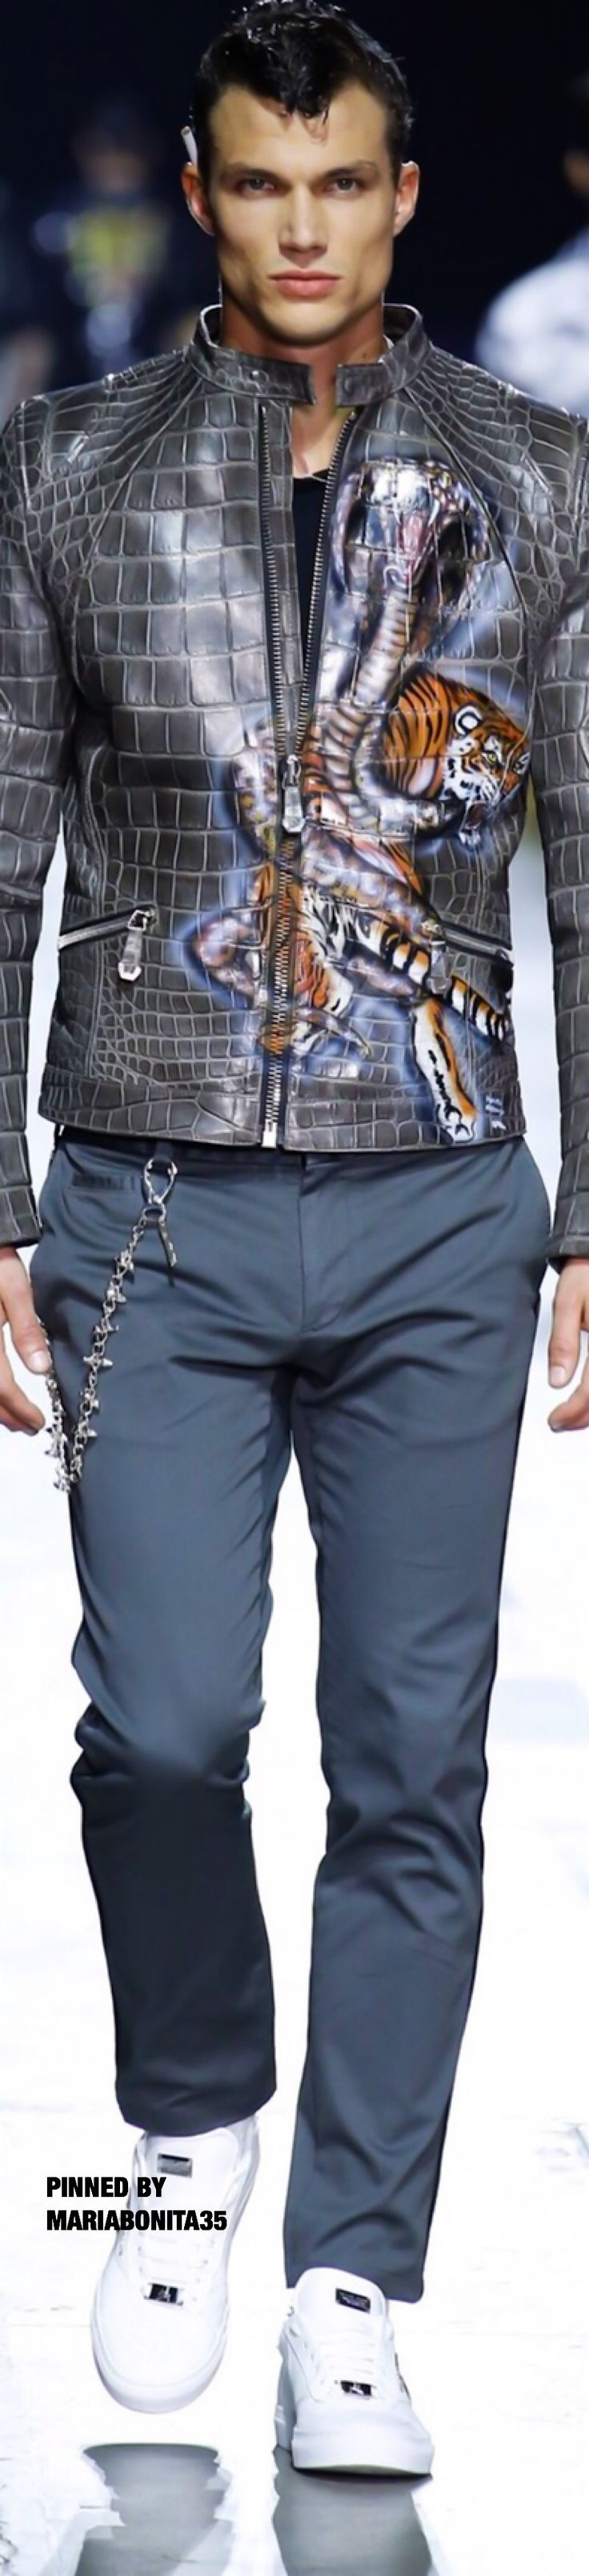 Phillipp Plein Menswear SS18